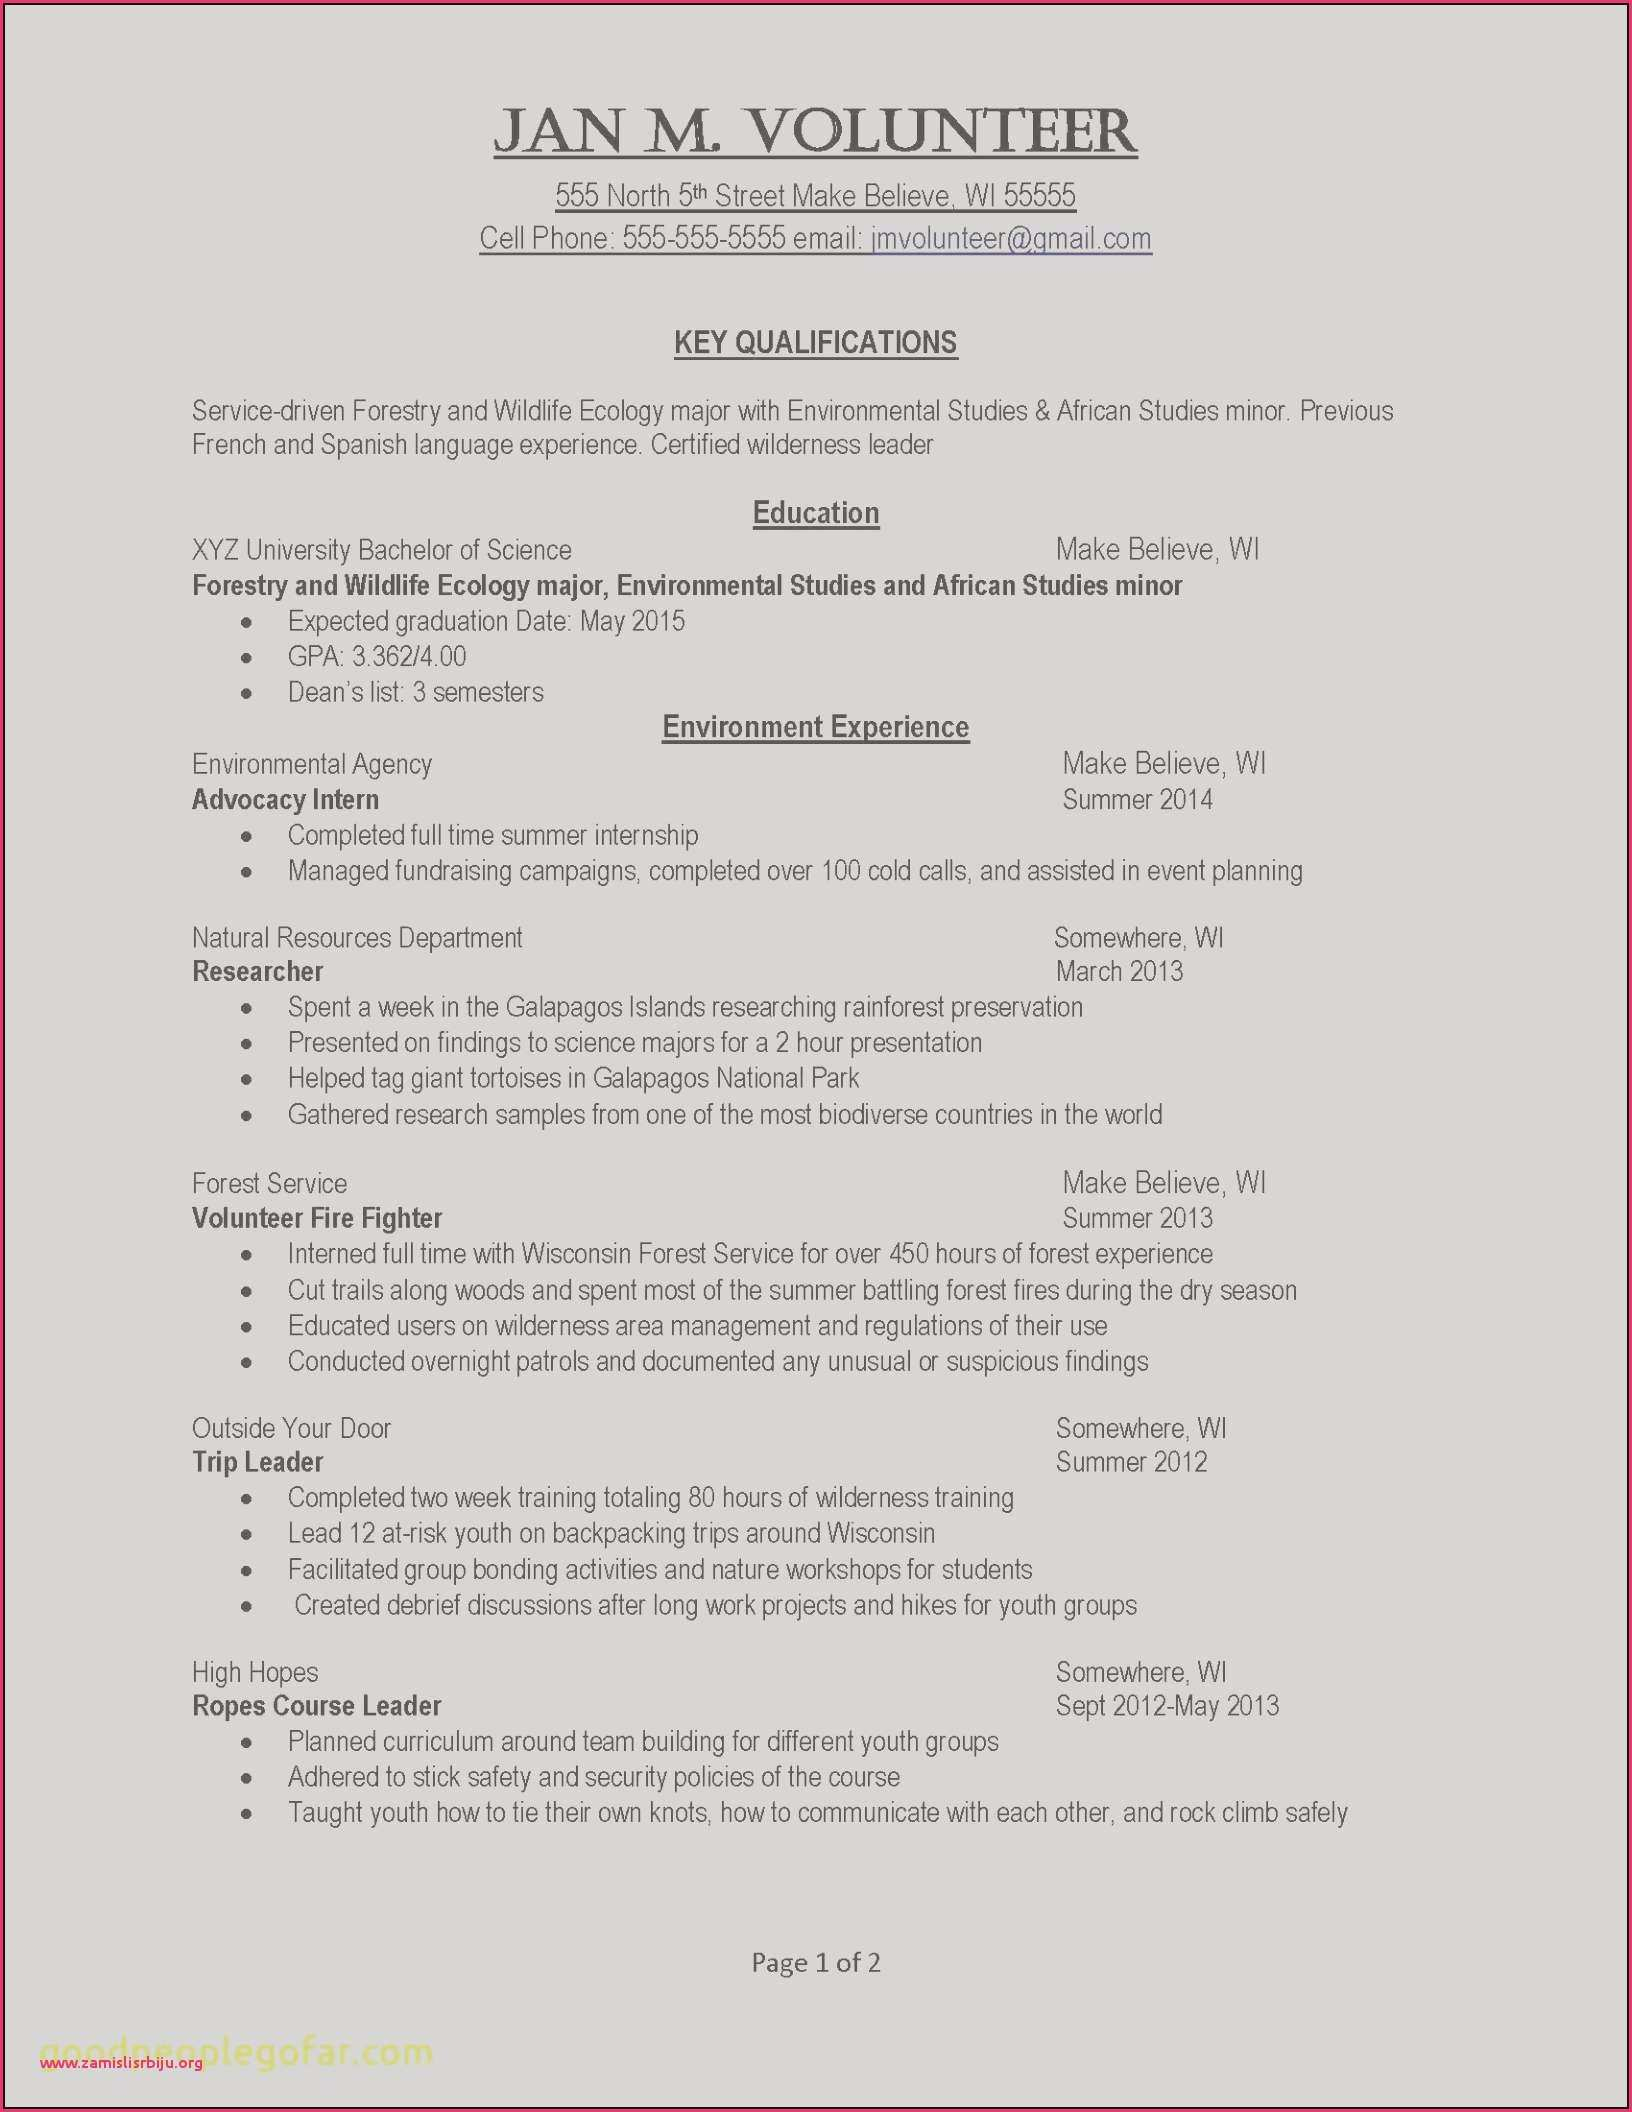 Visually Appealing Resume - How Can I Make A Resume Example Perfect Resume Fresh Examples